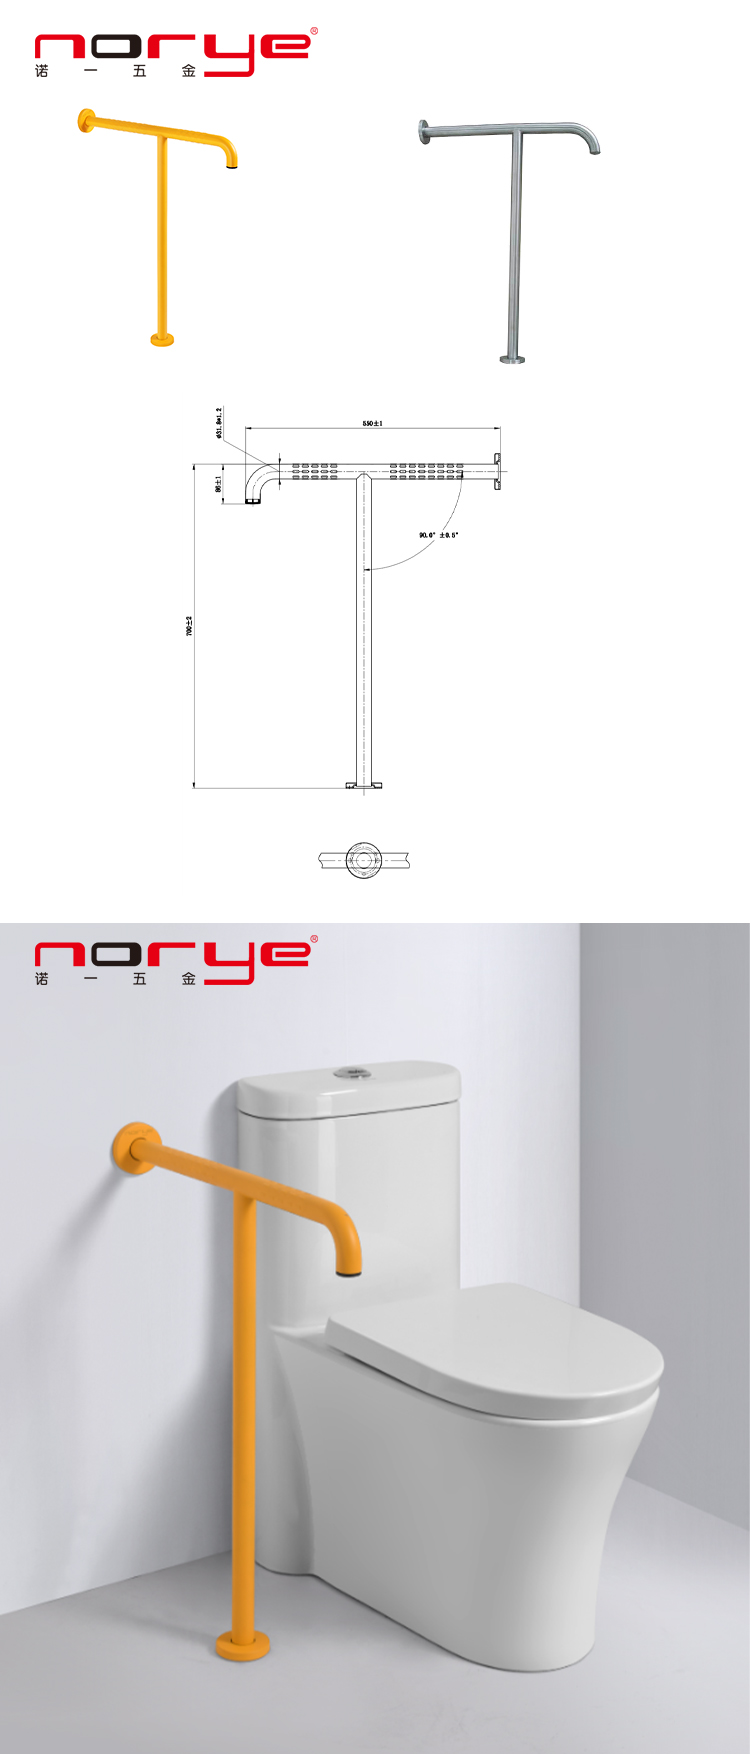 Norye best value bathroom grab rails stainless steel directly sale for hotel-2